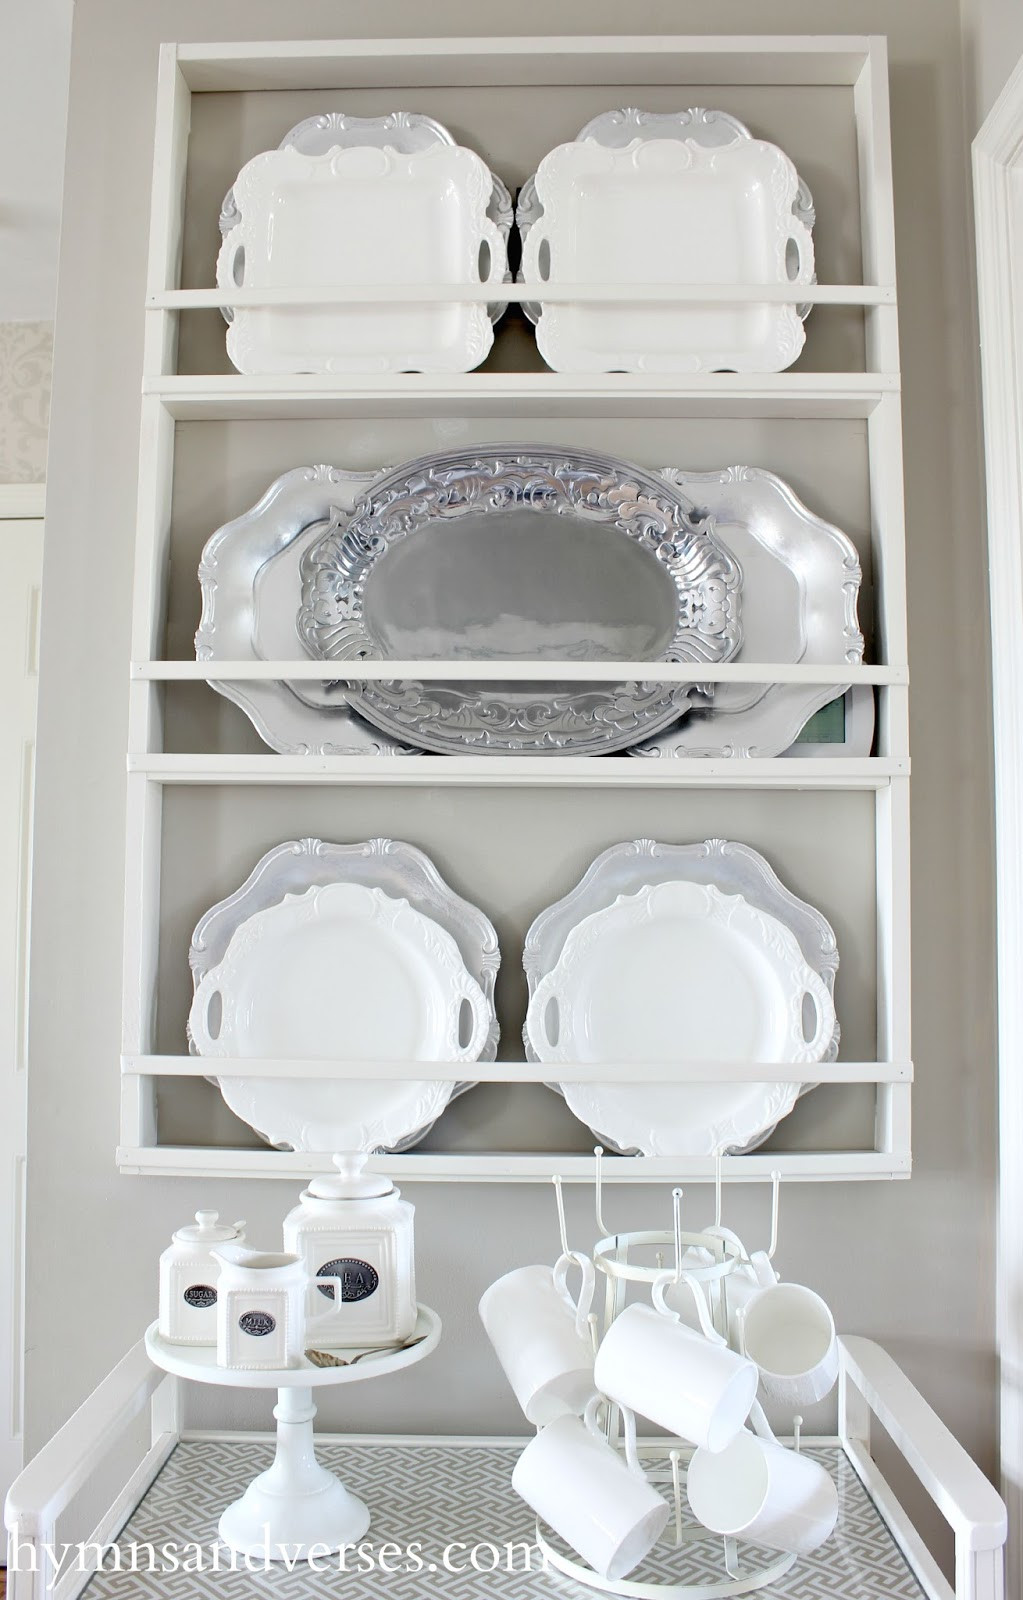 DIY Plate Rack  Build Your Own DIY Plate Rack Easy Plans Hymns and Verses